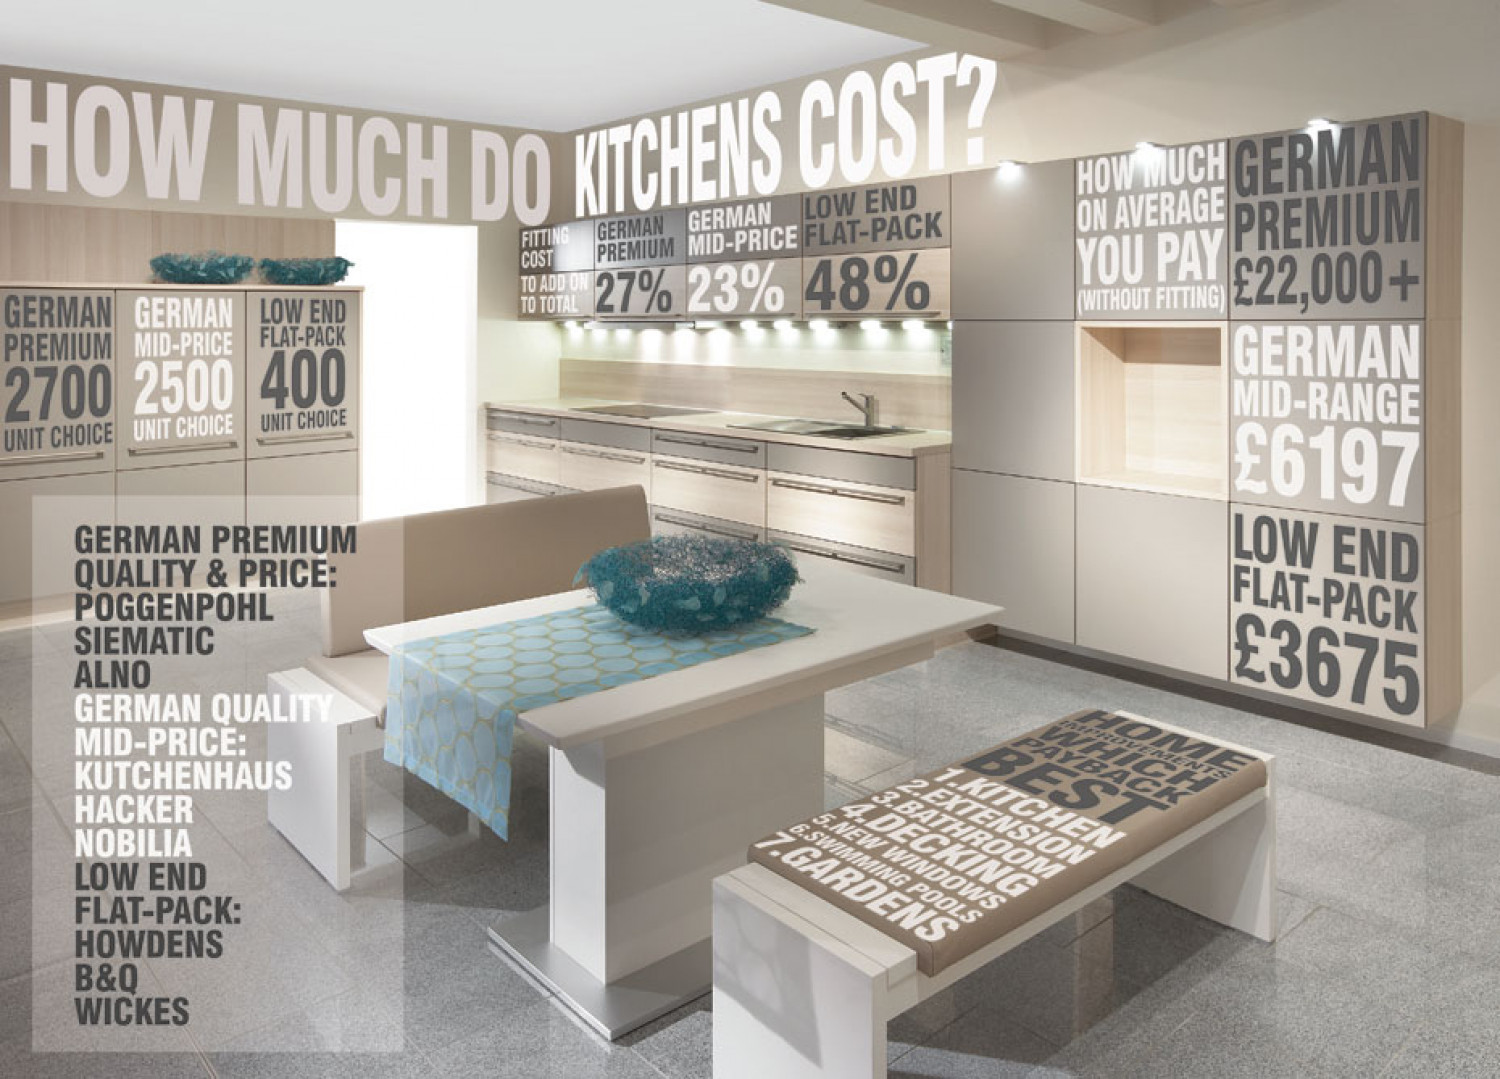 How Much Do Kitchens Cost